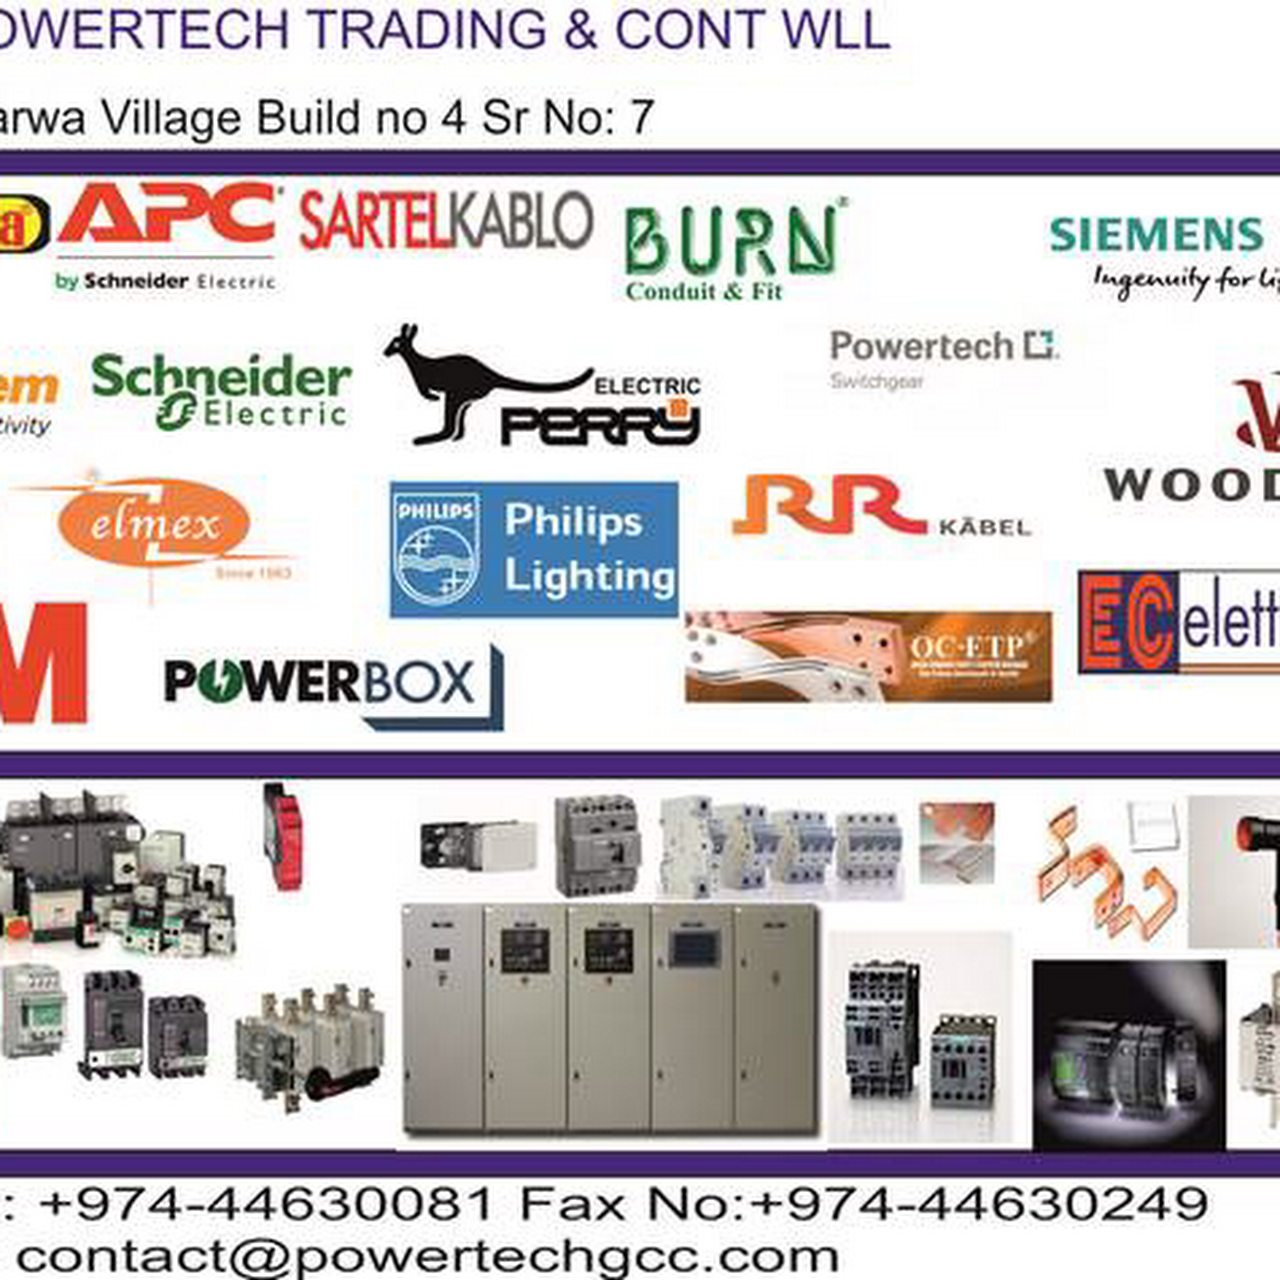 Powertech trading & cont wll - Electrical Sub-Station in Doha